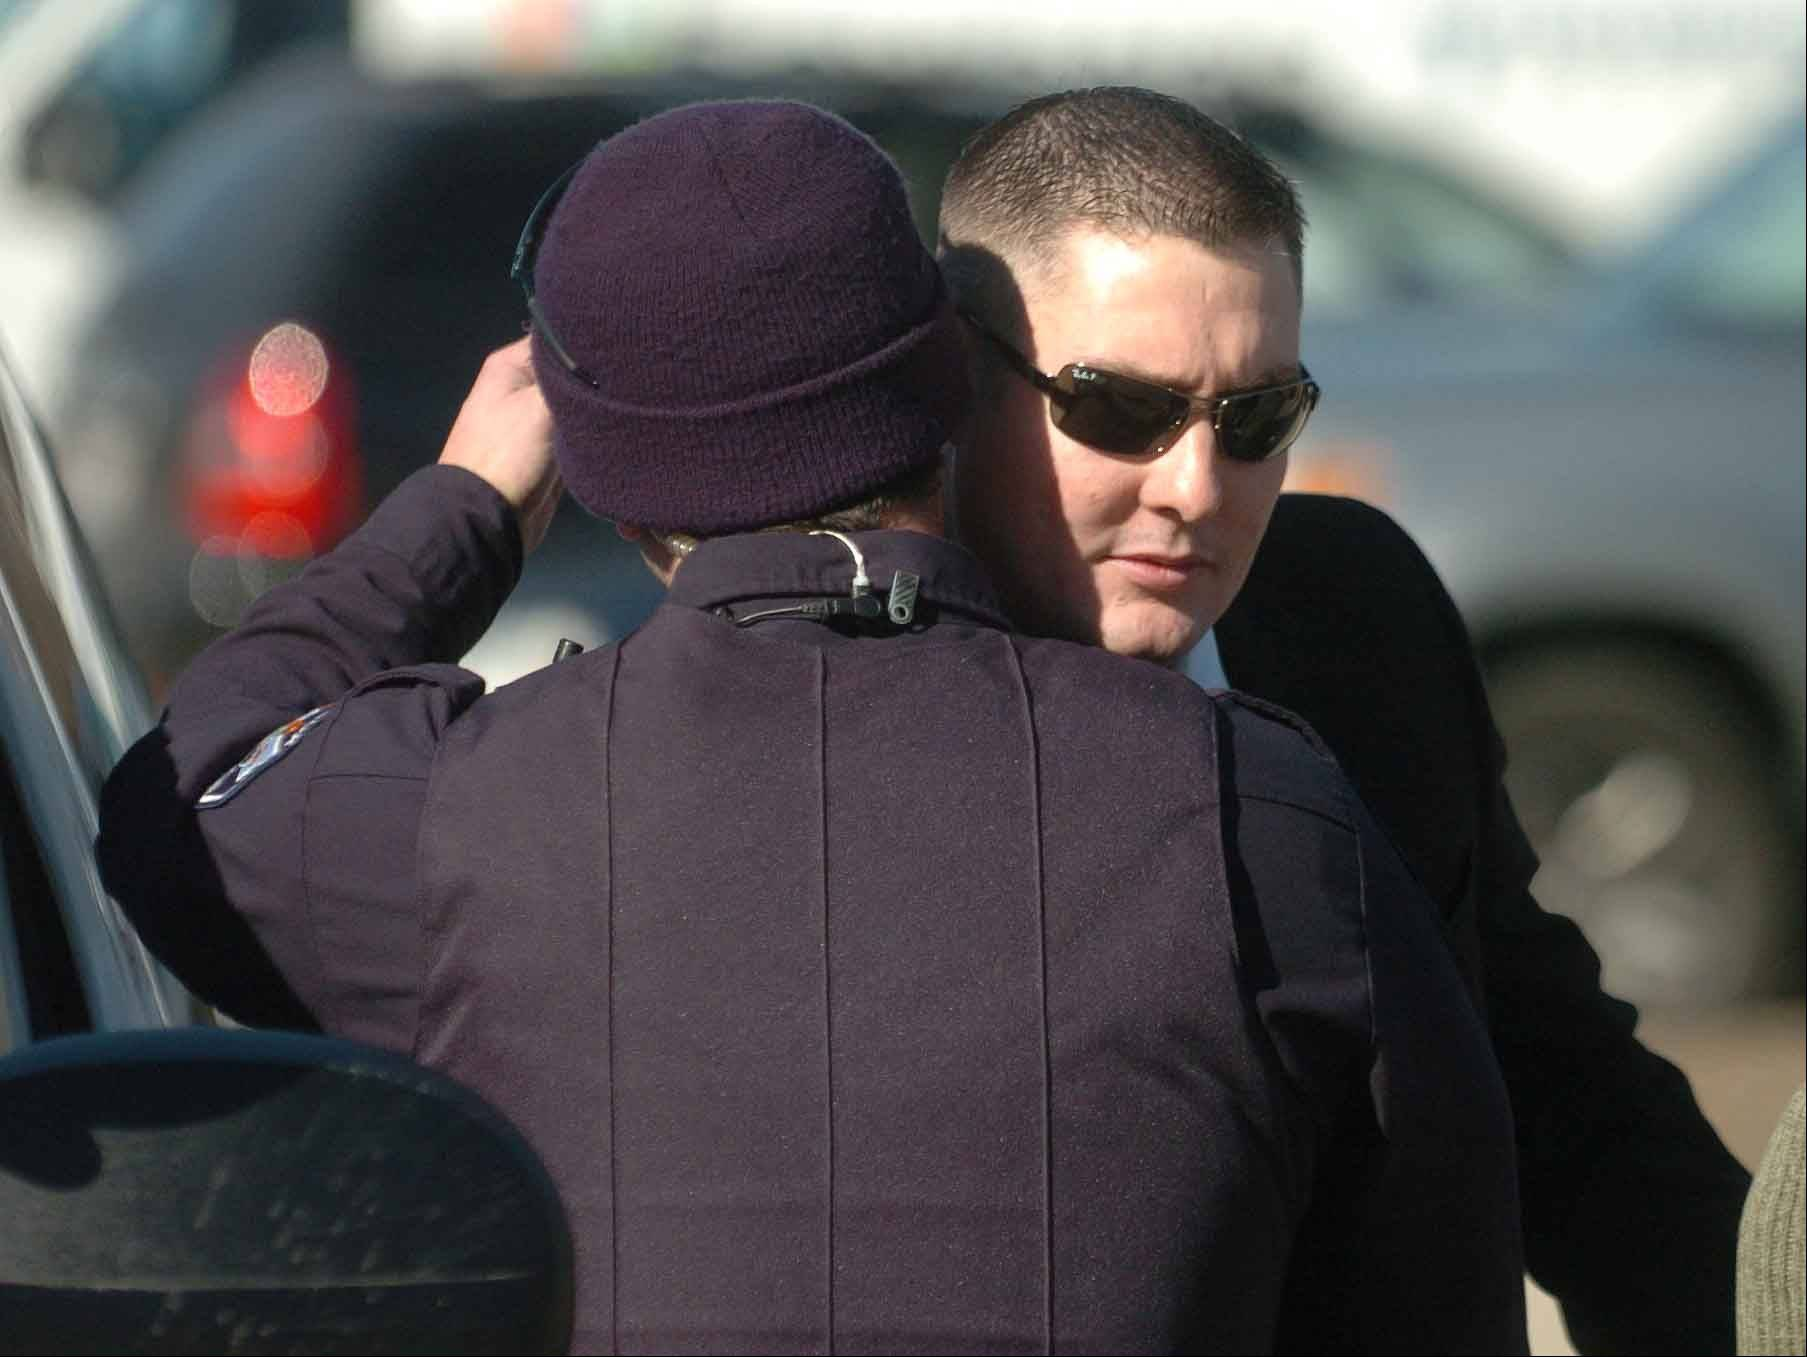 Oak Brook police officer Andrew Franczak says goodbye to Stephen Peterson after Peterson was dismissed from the force in February 2011.